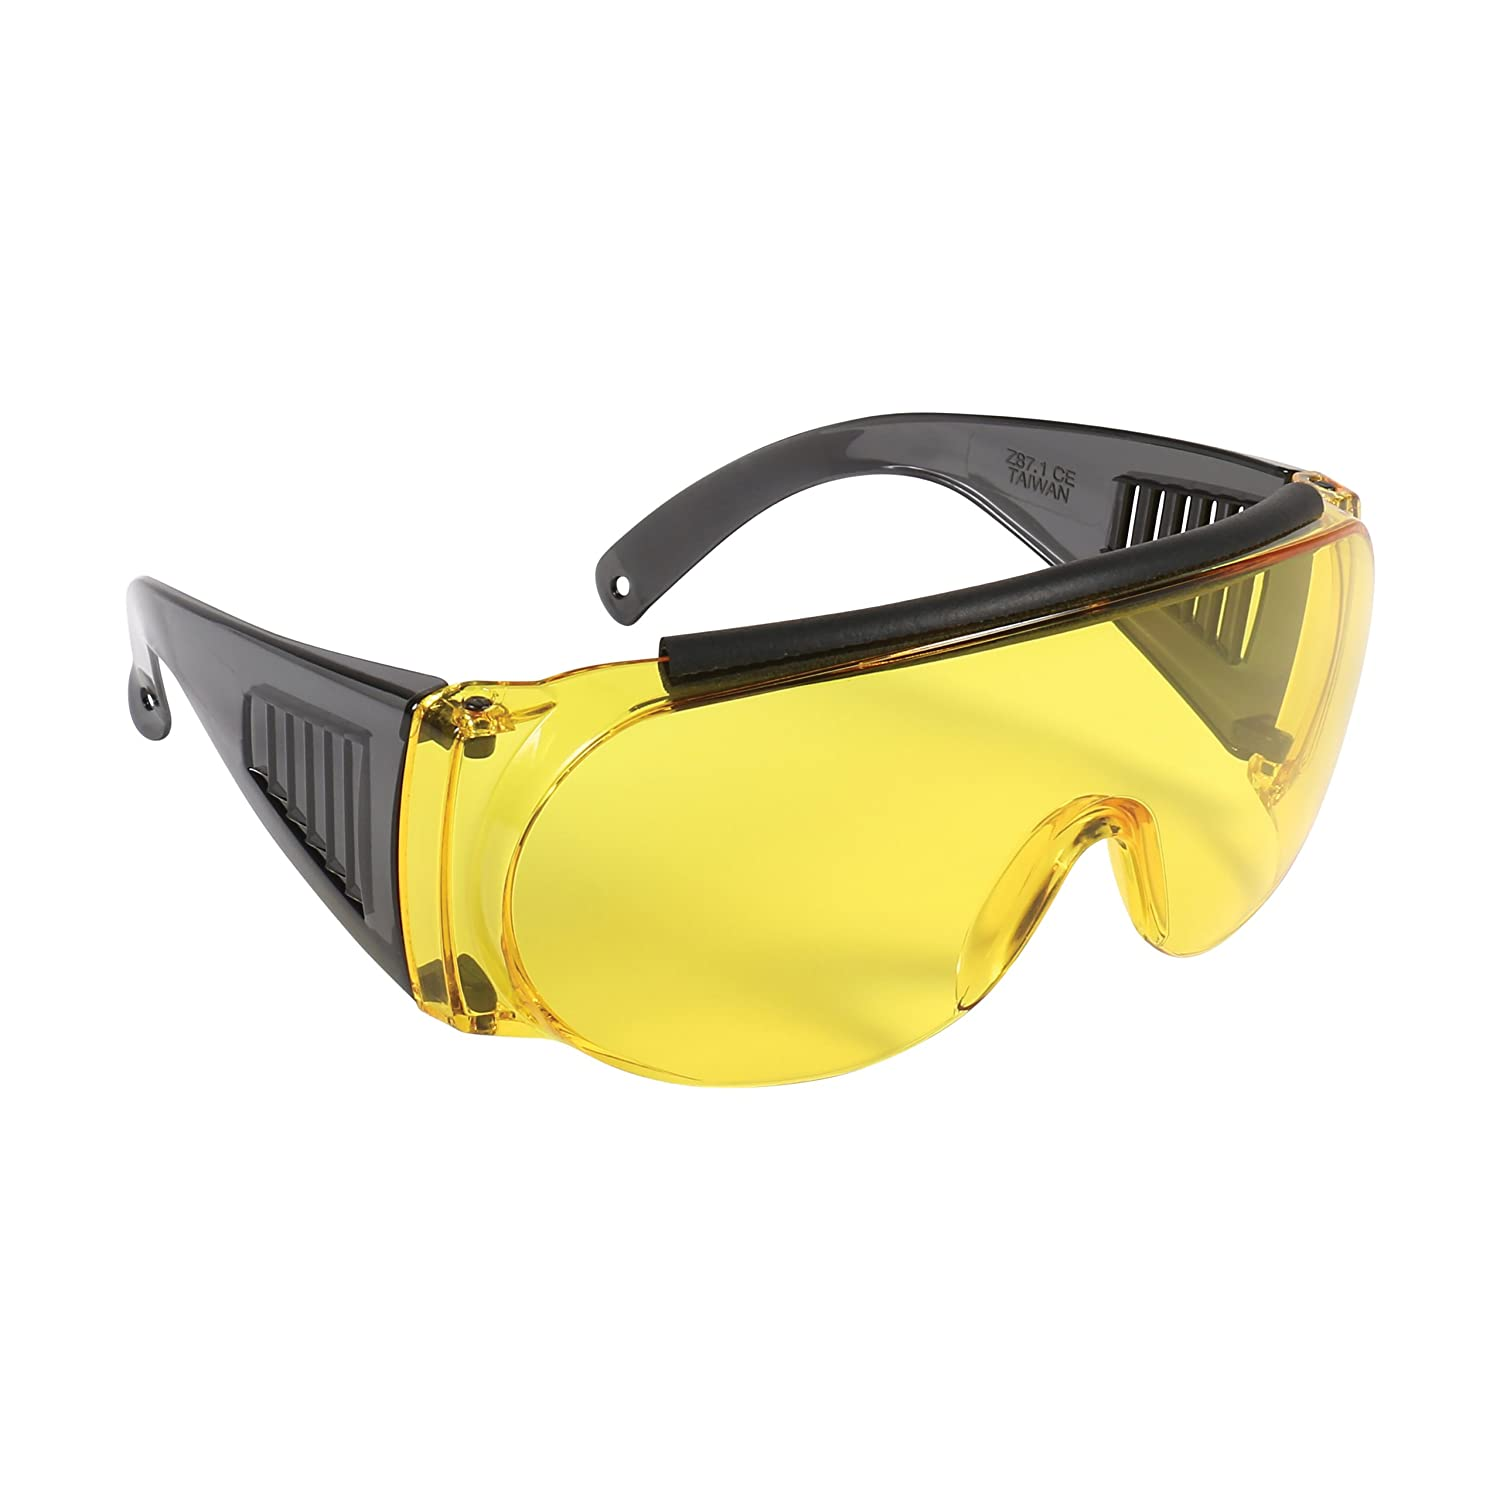 688b42f7da9 Allen Over Shooting   Safety Glasses for Use with Prescription Glasses   Amazon.ca  Sports   Outdoors